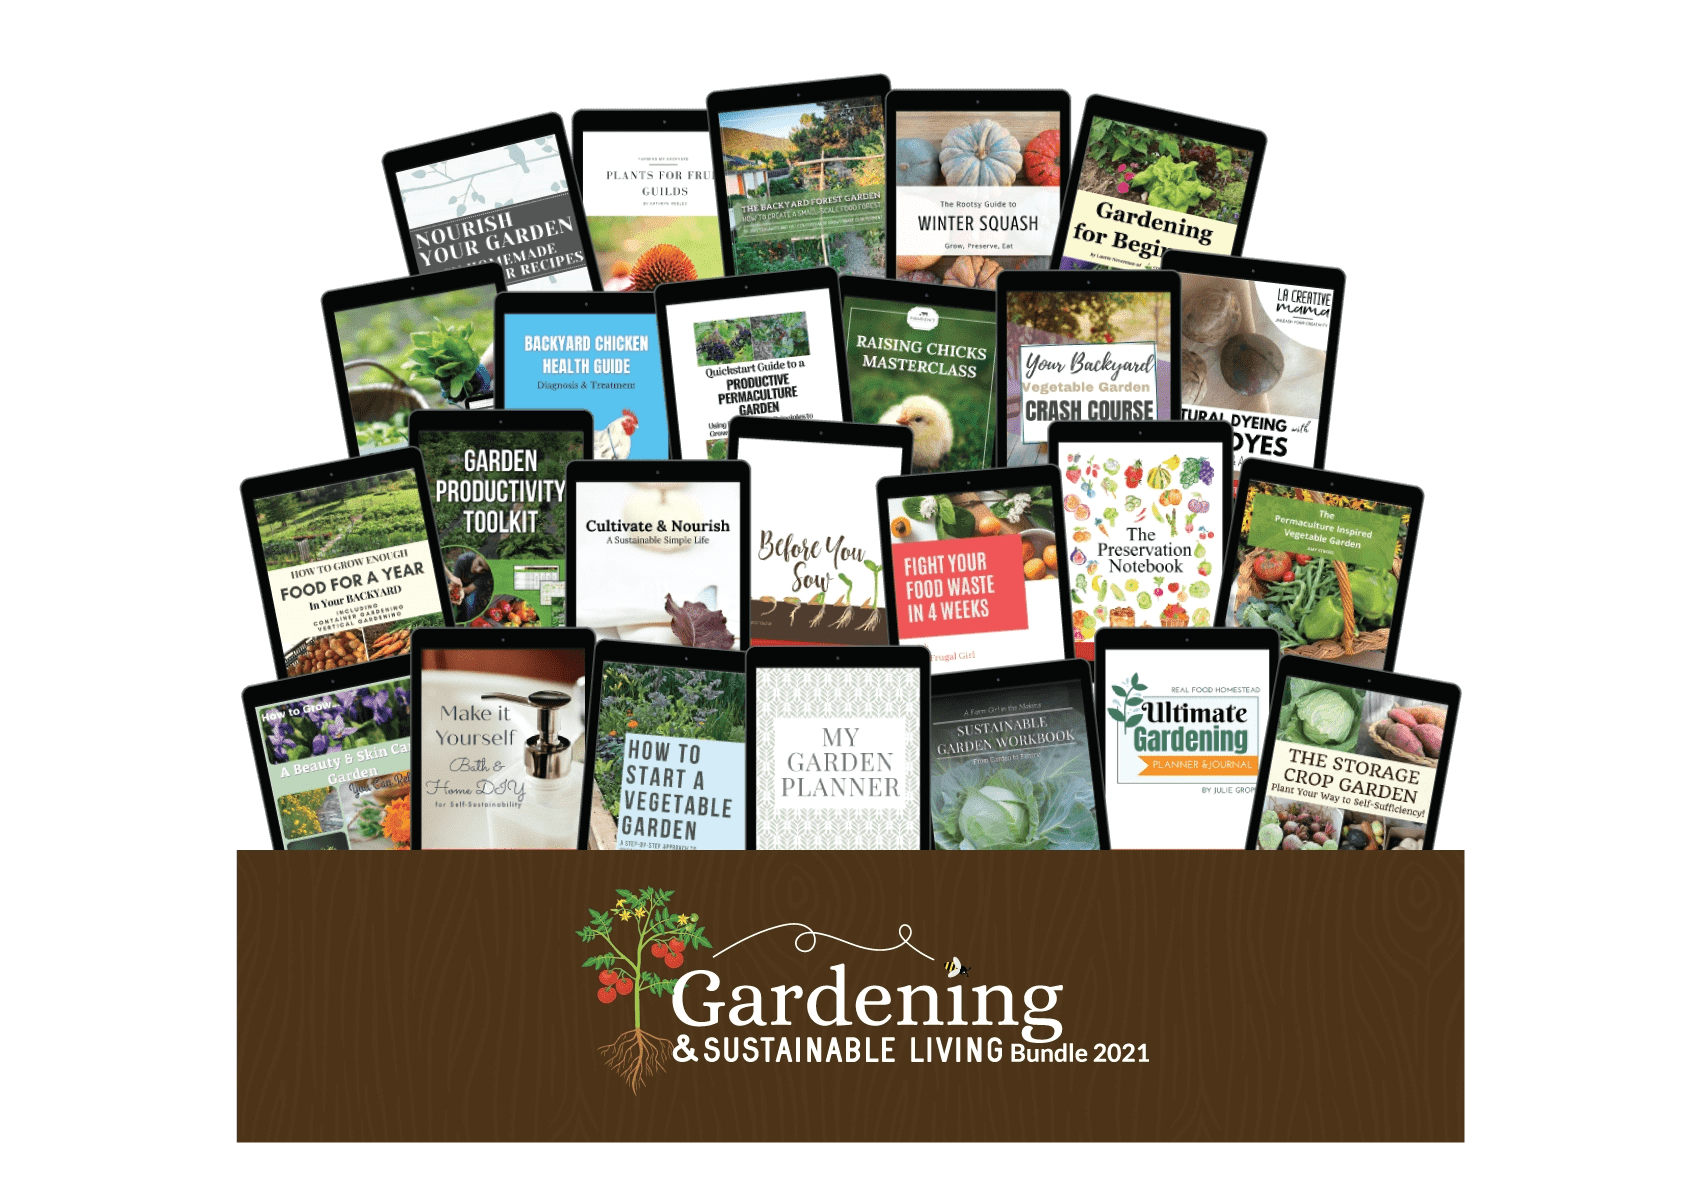 gardening and sustainable living mock up image of the bundle of ebooks, courses, printables and planners